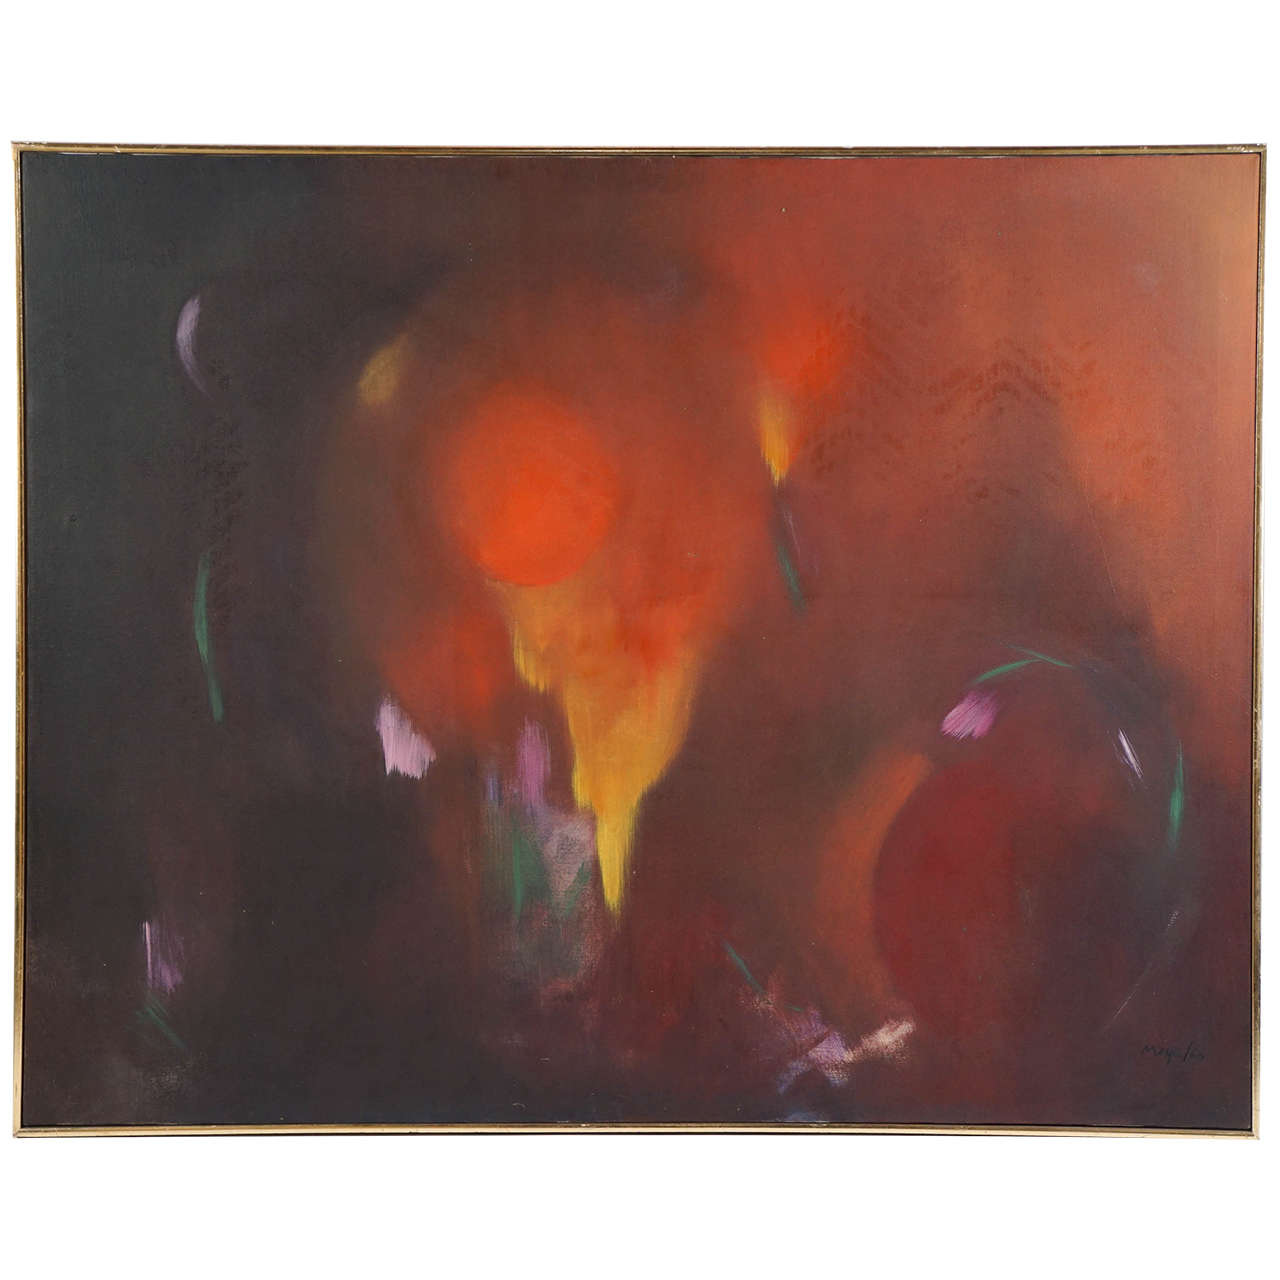 Large Orange Abstract Oil on Canvas Painting